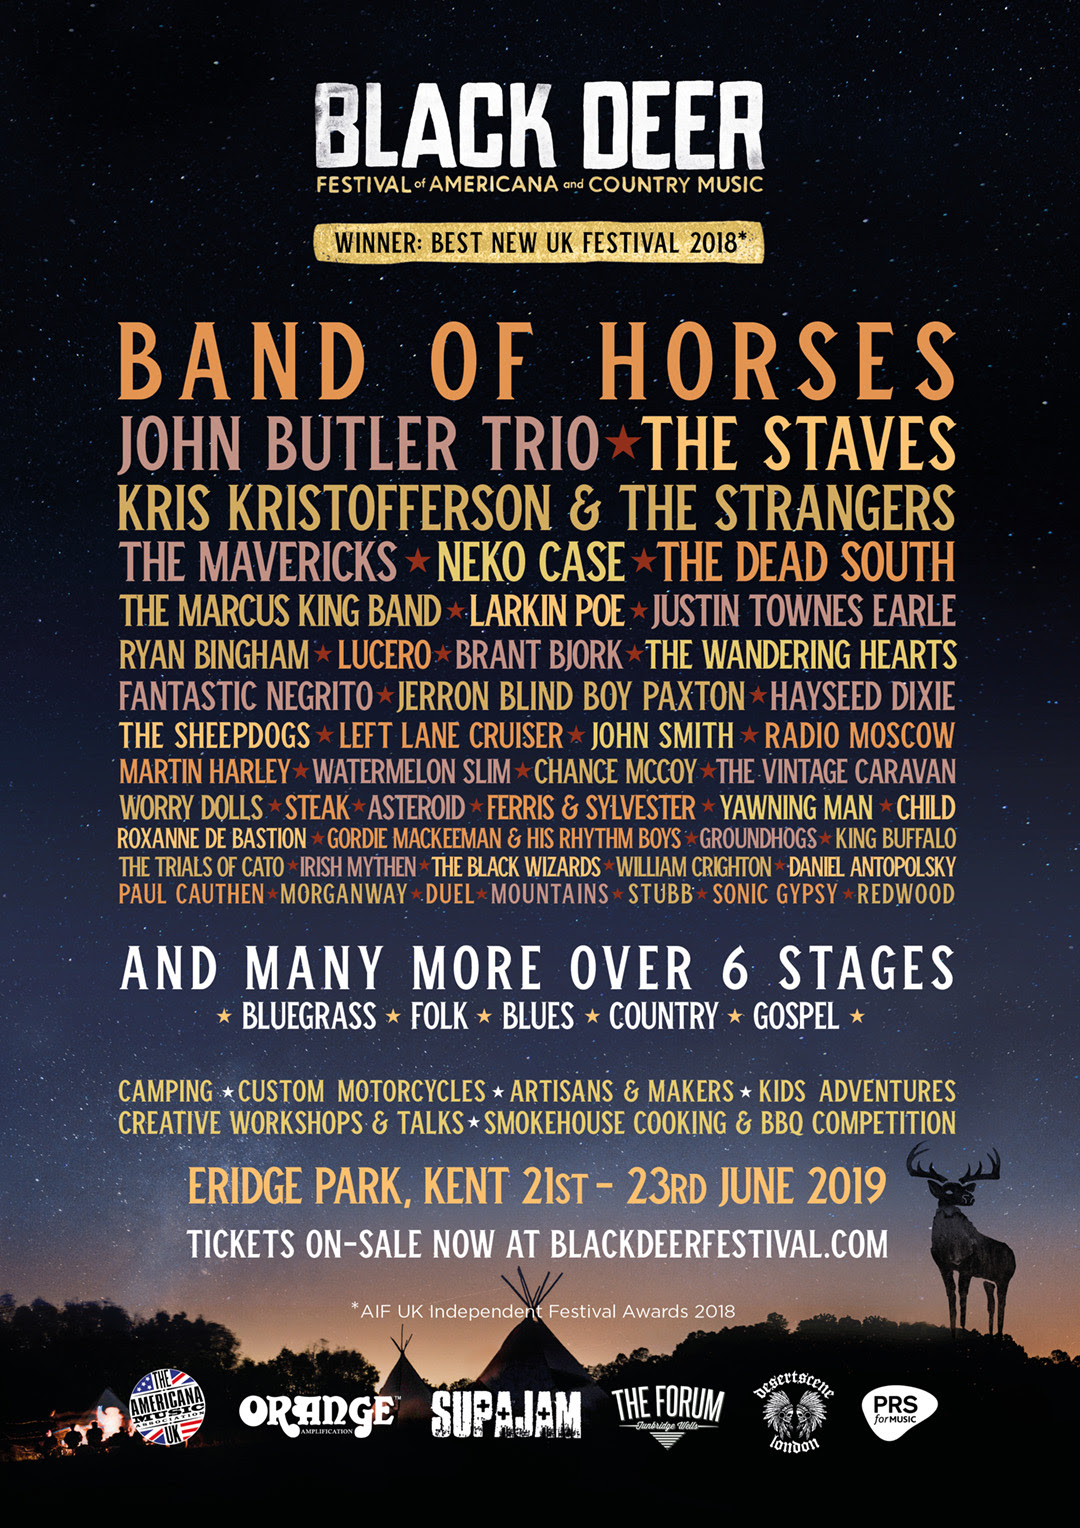 The Staves, Kris Kristofferson & The Strangers, The